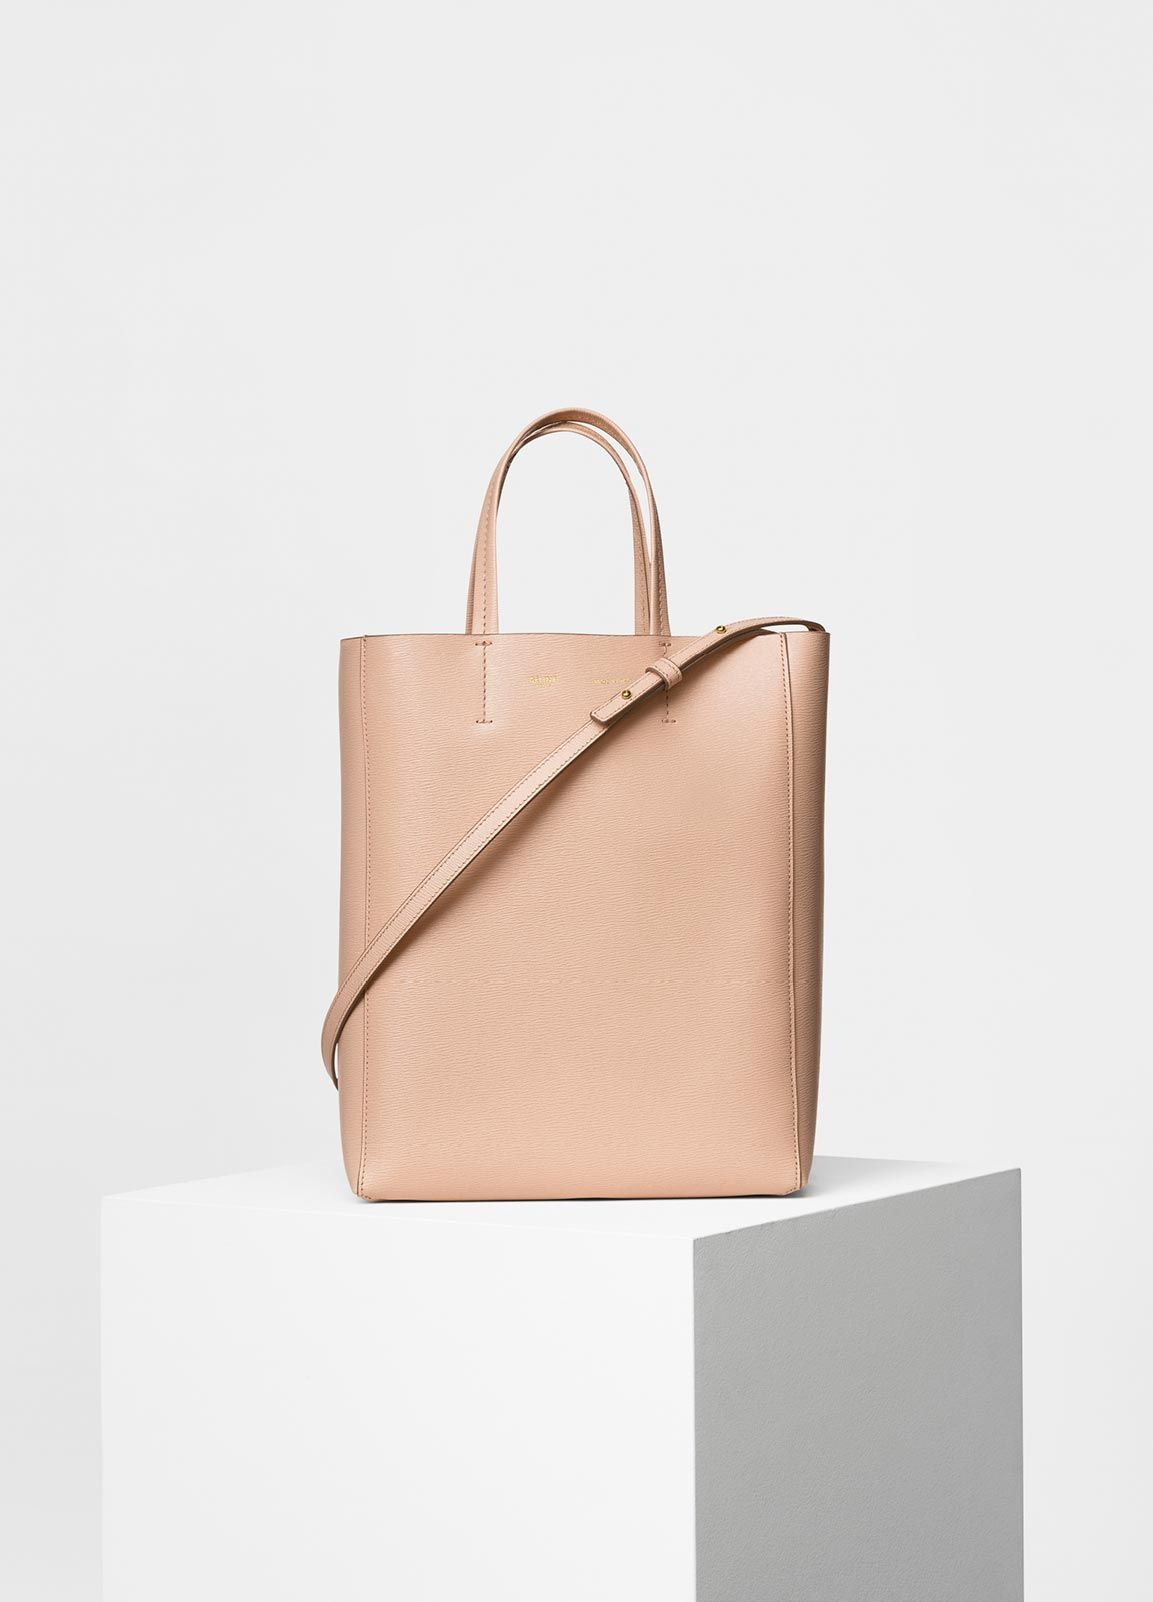 80f65592e86b Celine Spring 2017 Small Cabas in Blush Calfskin Liégé SMALL CABAS IN BLUSH  CALFSKIN LIÉGÉ REMOVABLE AND AJUSTABLE STRAP. Vertical.